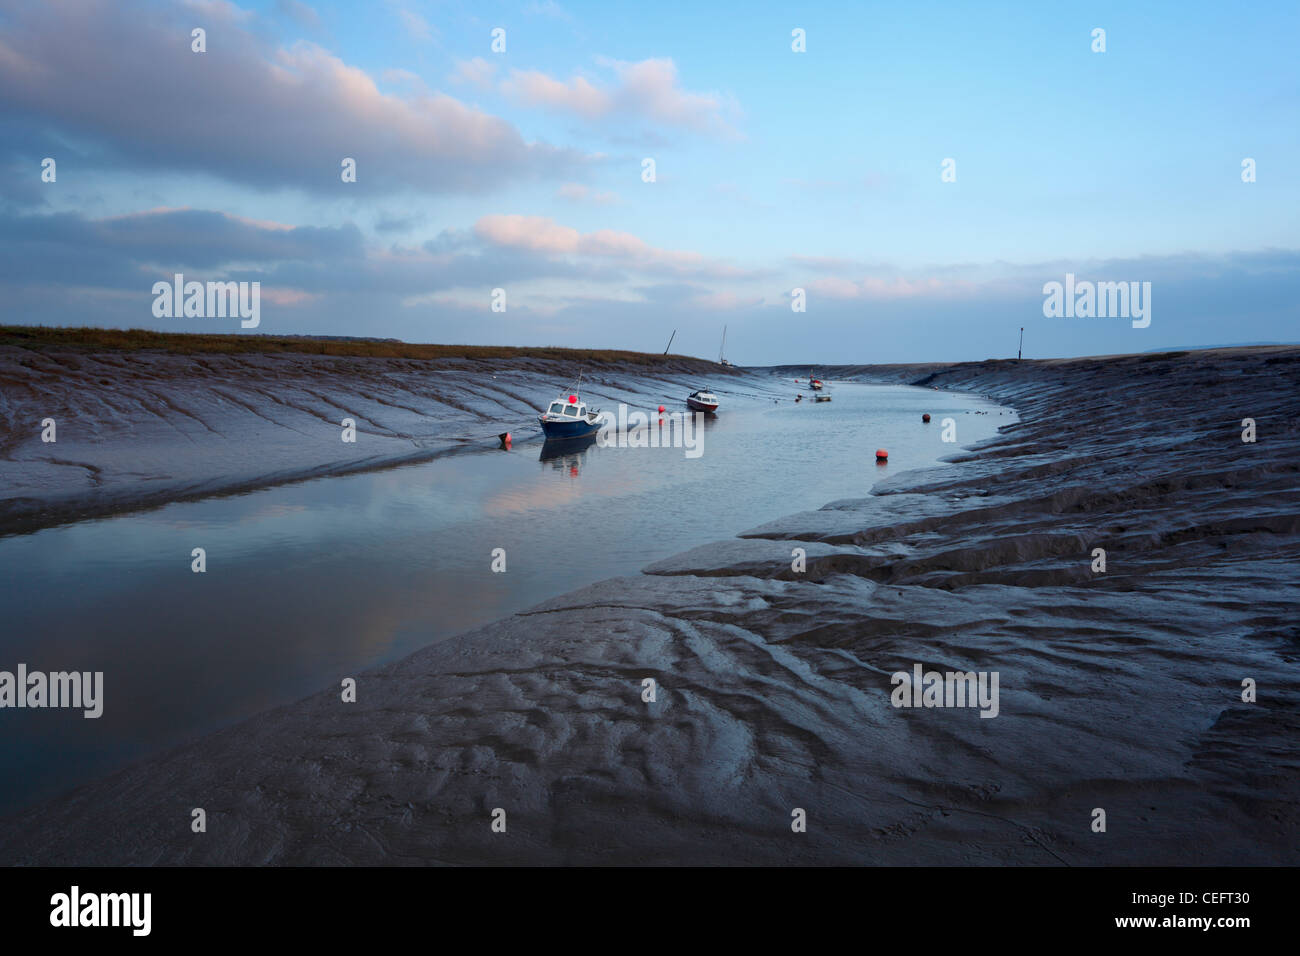 The River Axe at Low Tide. Weston-super-mare. Somerset. England. UK. - Stock Image